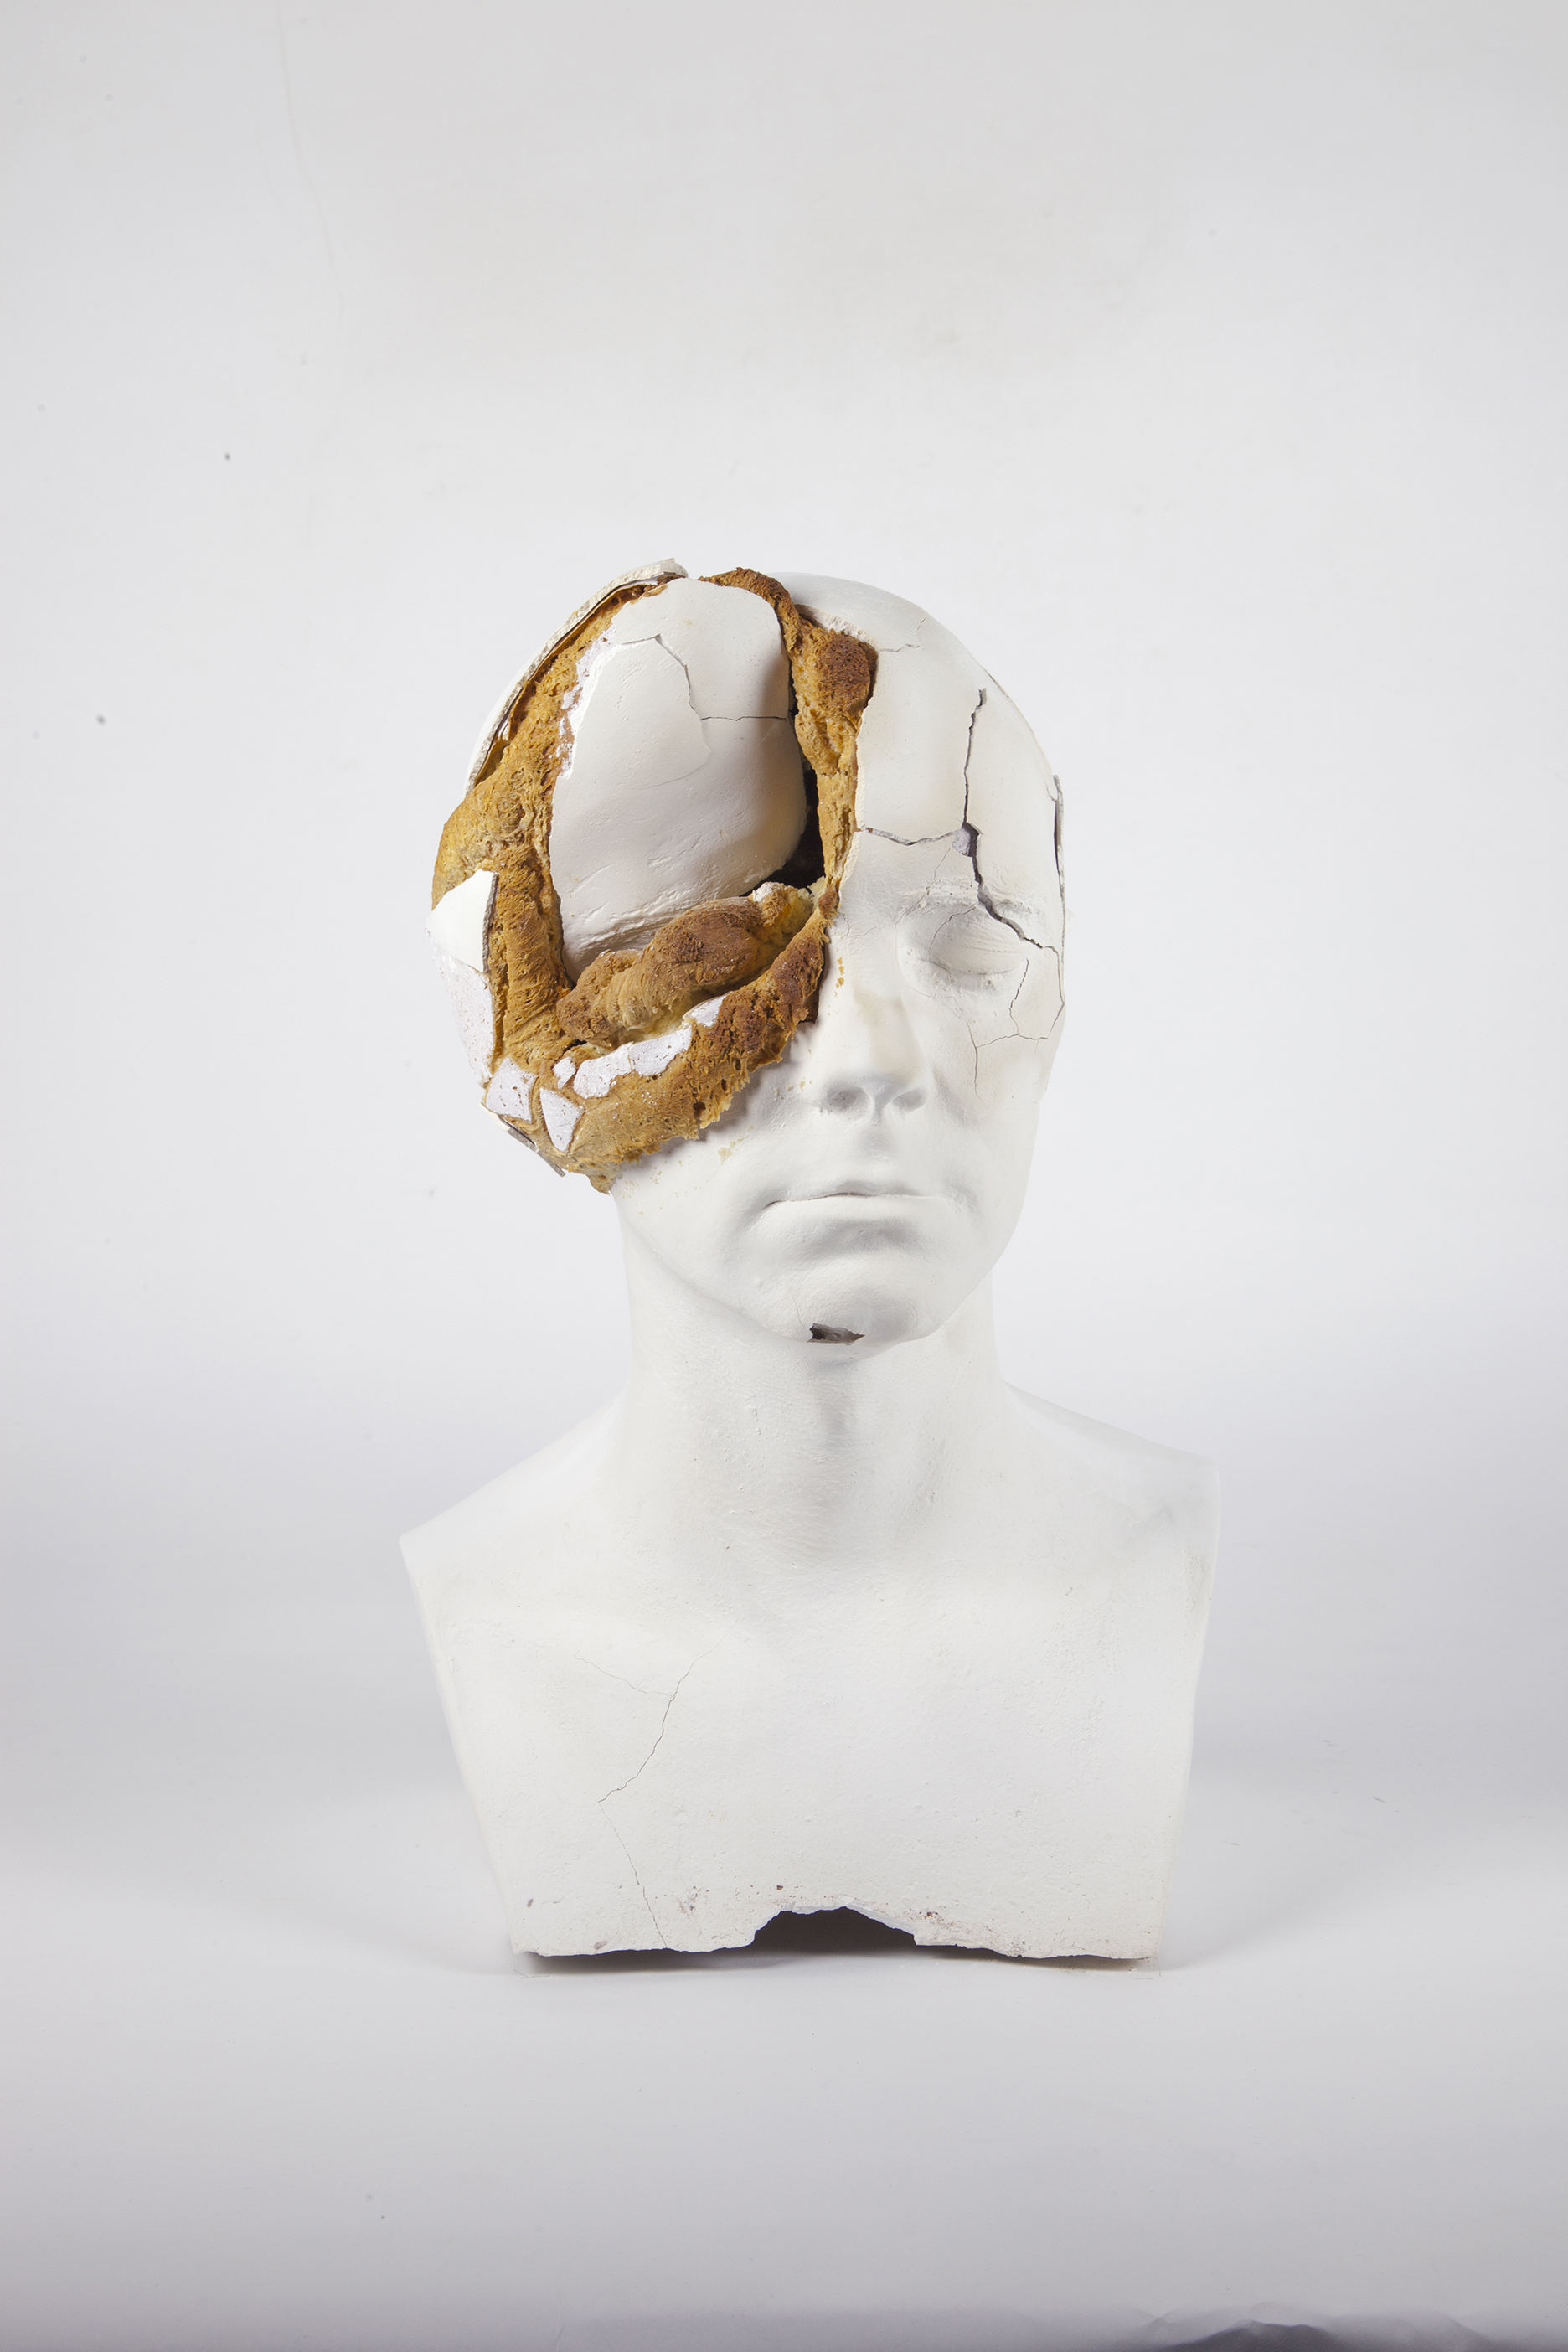 Tim Silver, 'Oneirophrenia', 2015, plaster and baked bread. Courtesy the artist and Sullivan + Strumpf.